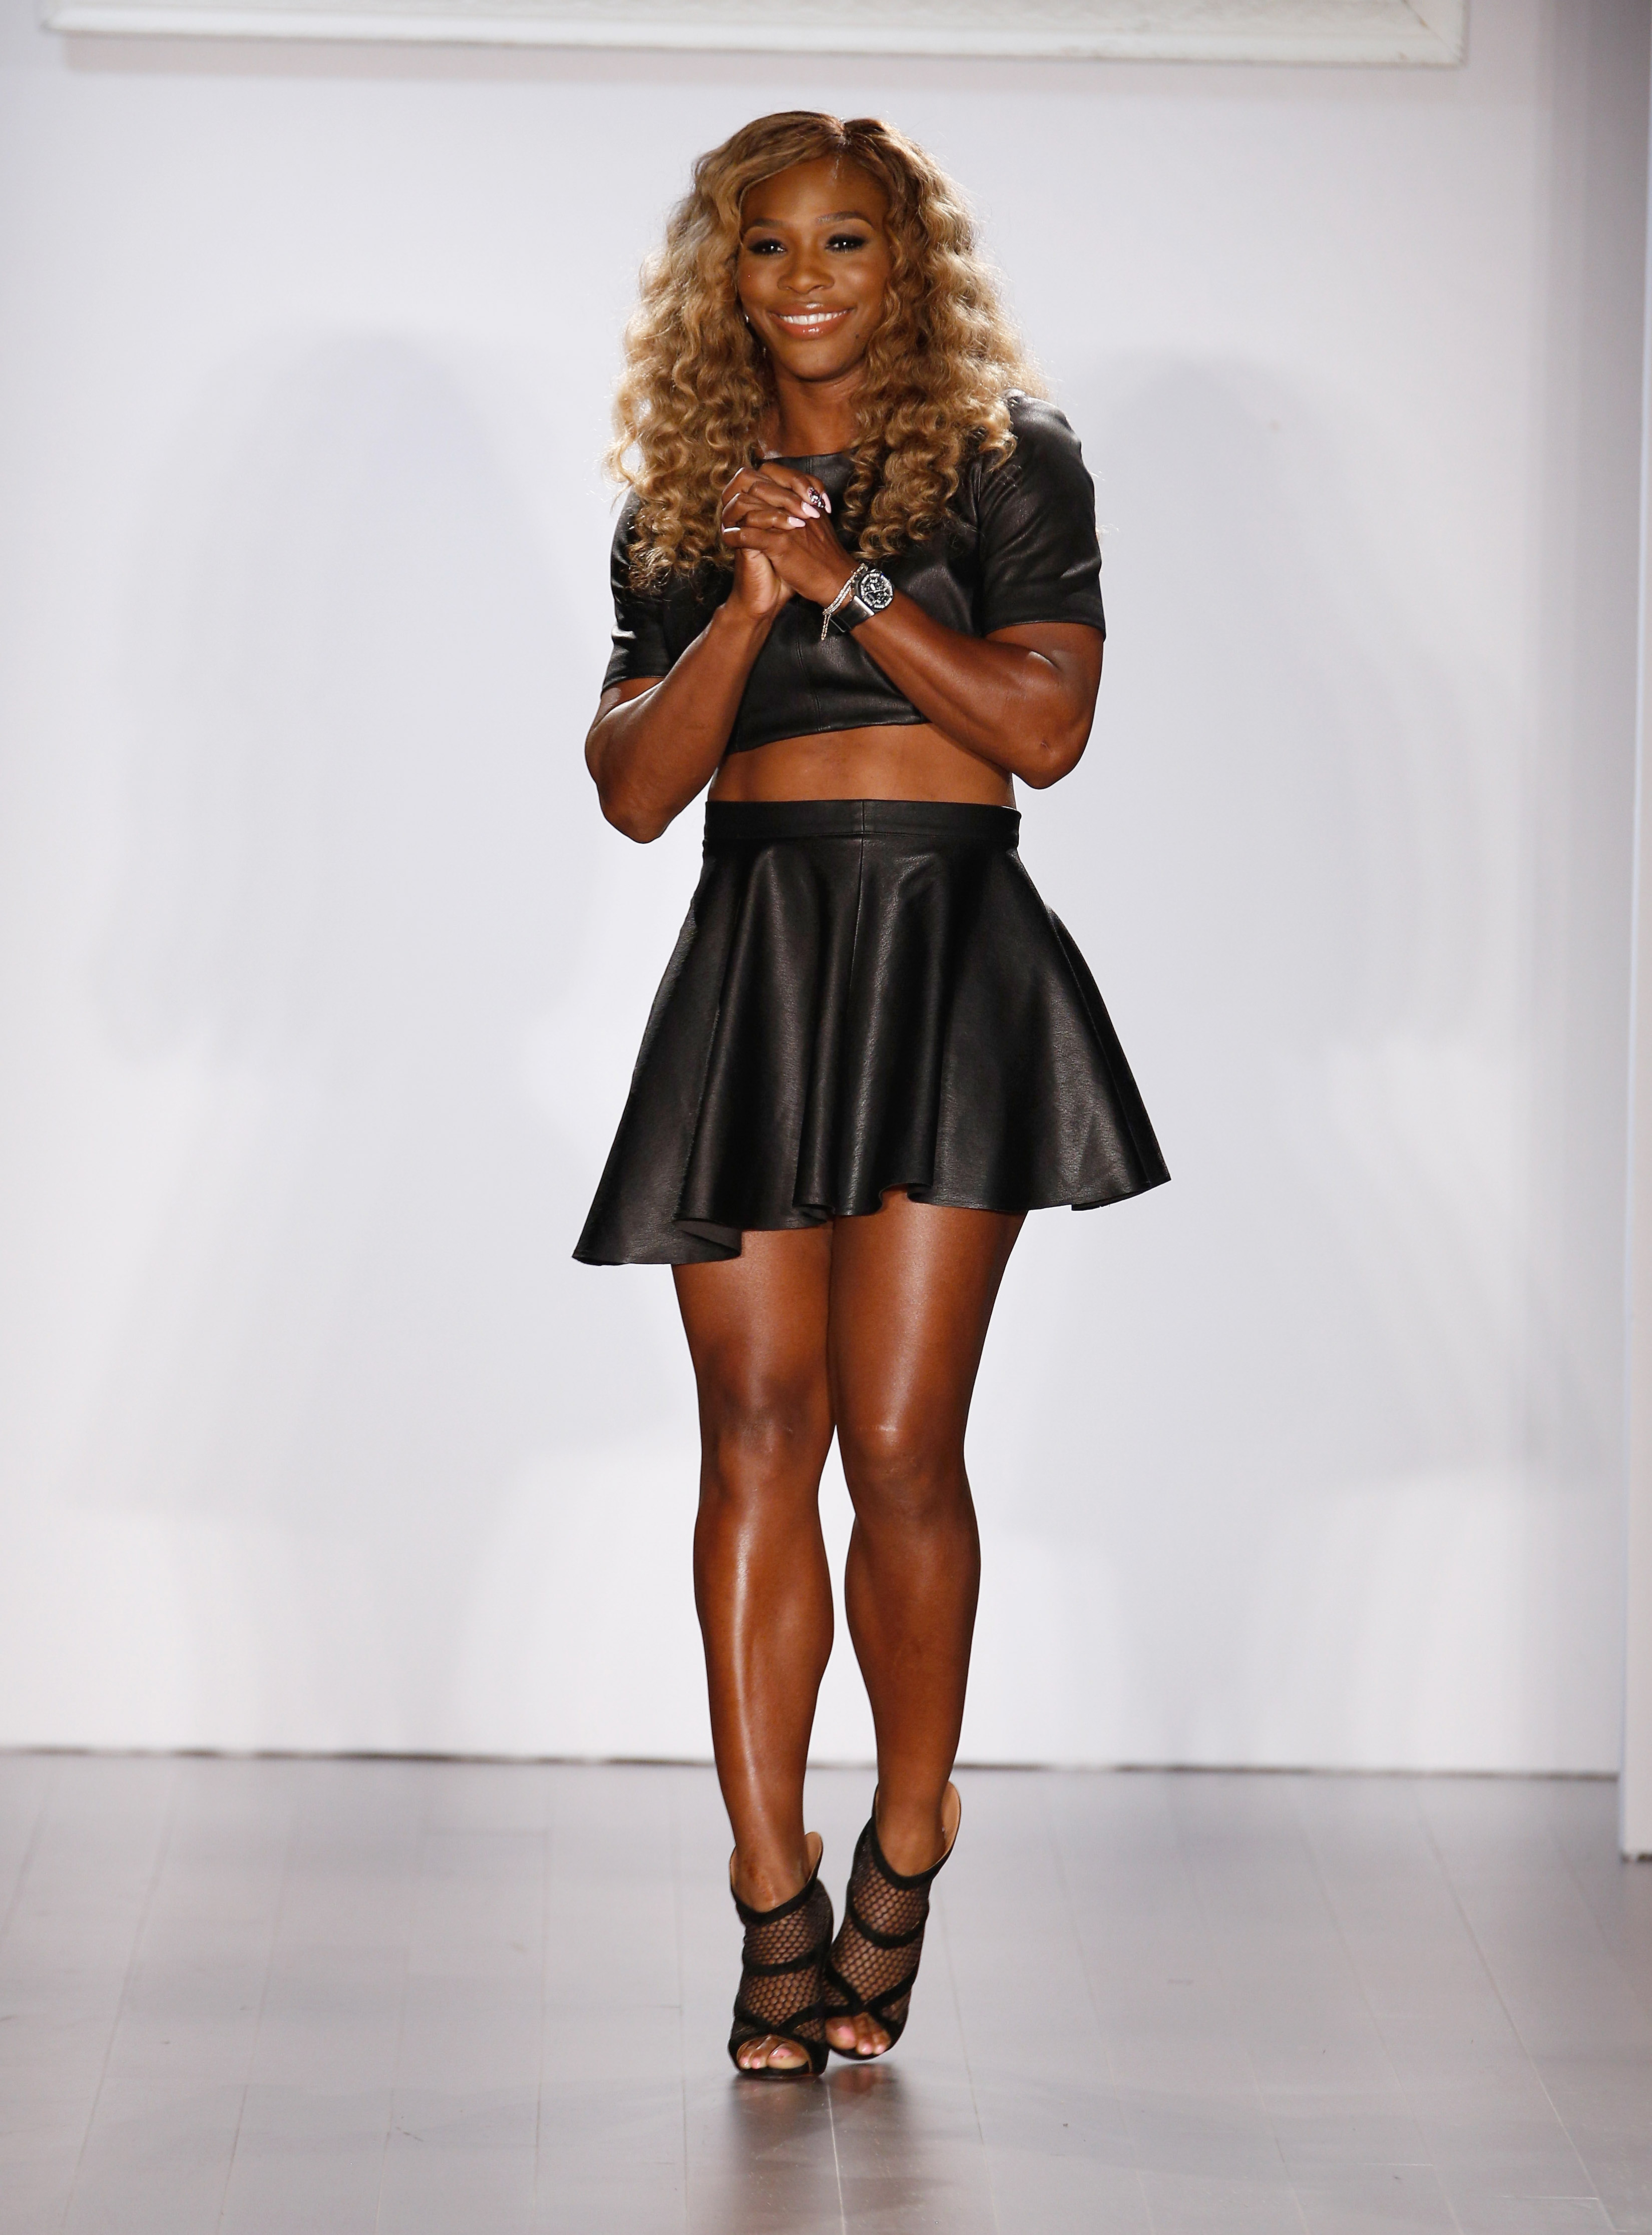 Serena Williams walks the runway at the Serena Williams Signature Statement Collection show during STYLE360 on September 9, 2014 in New York City.